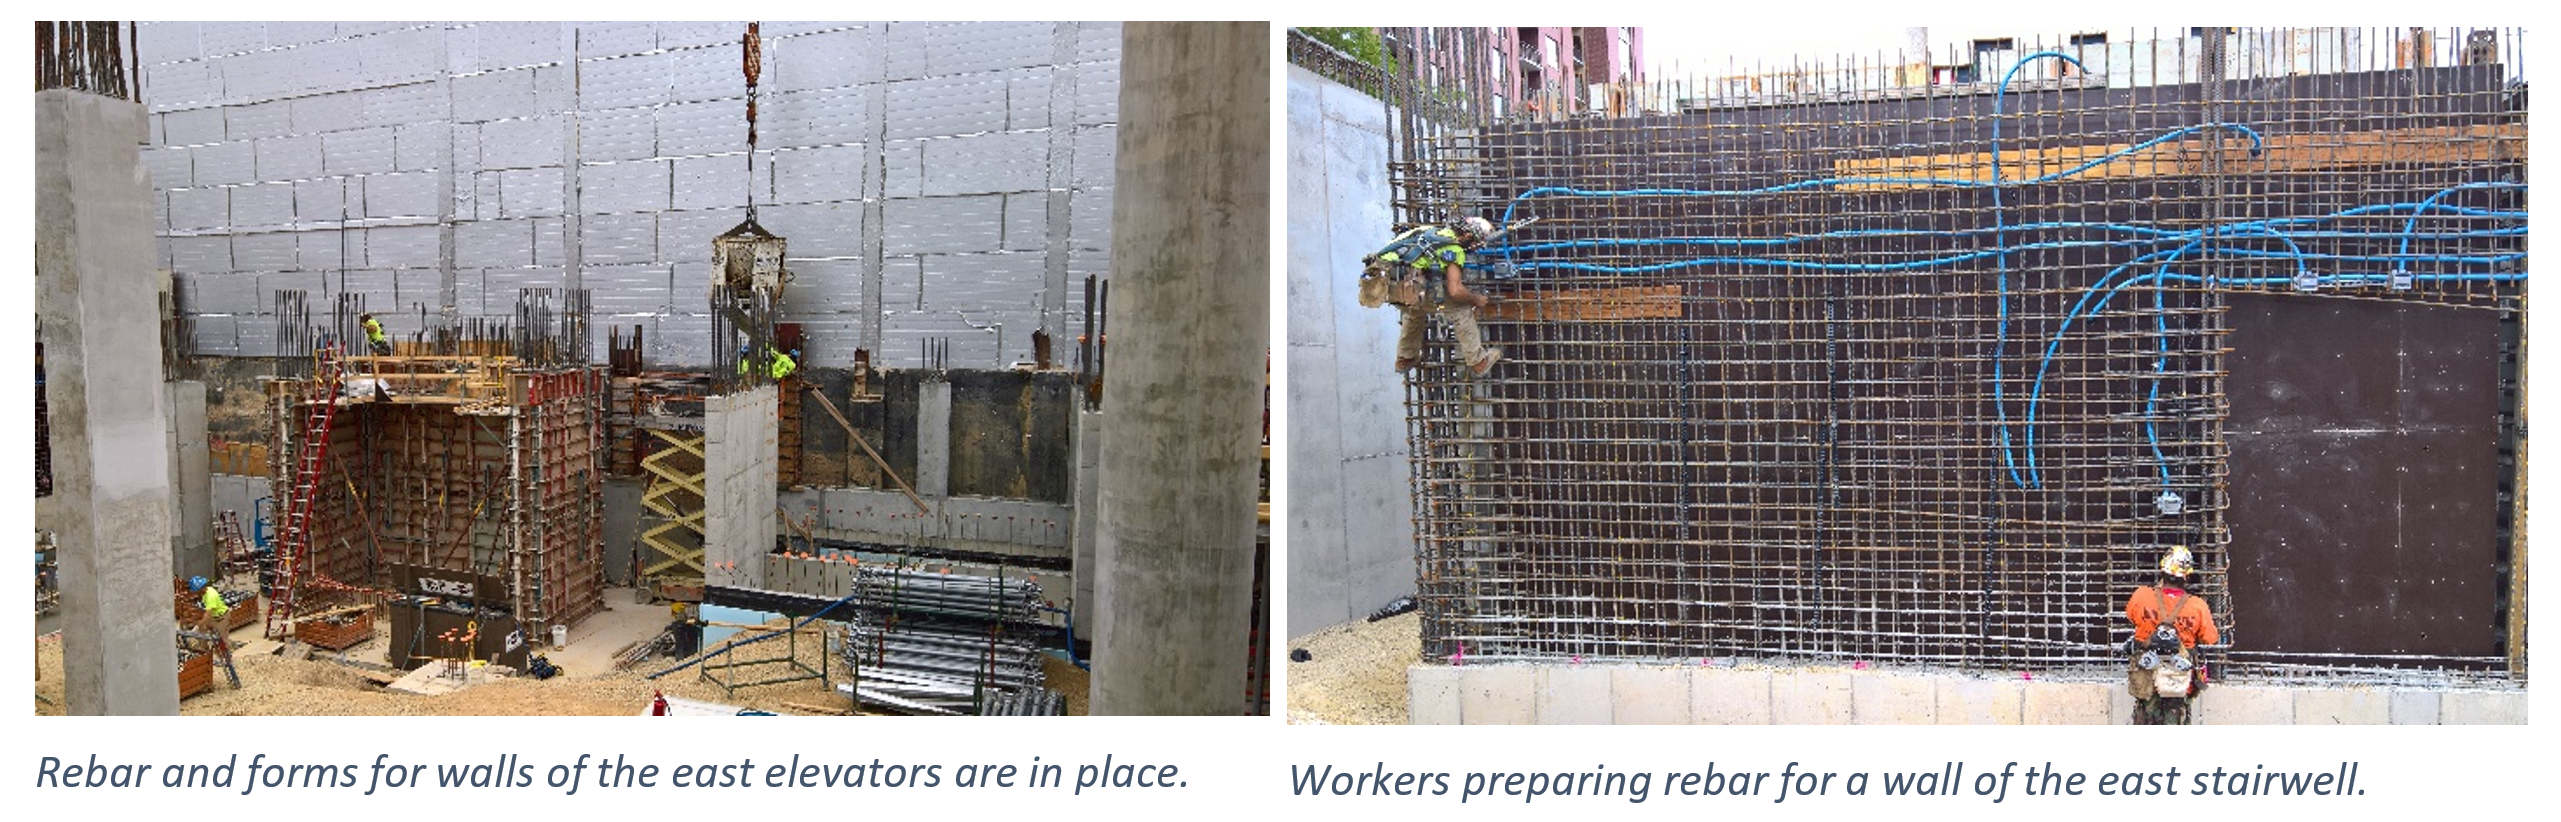 Photos of rebar forms for walls and workers preparing metal pieces of walls for a stairwell.